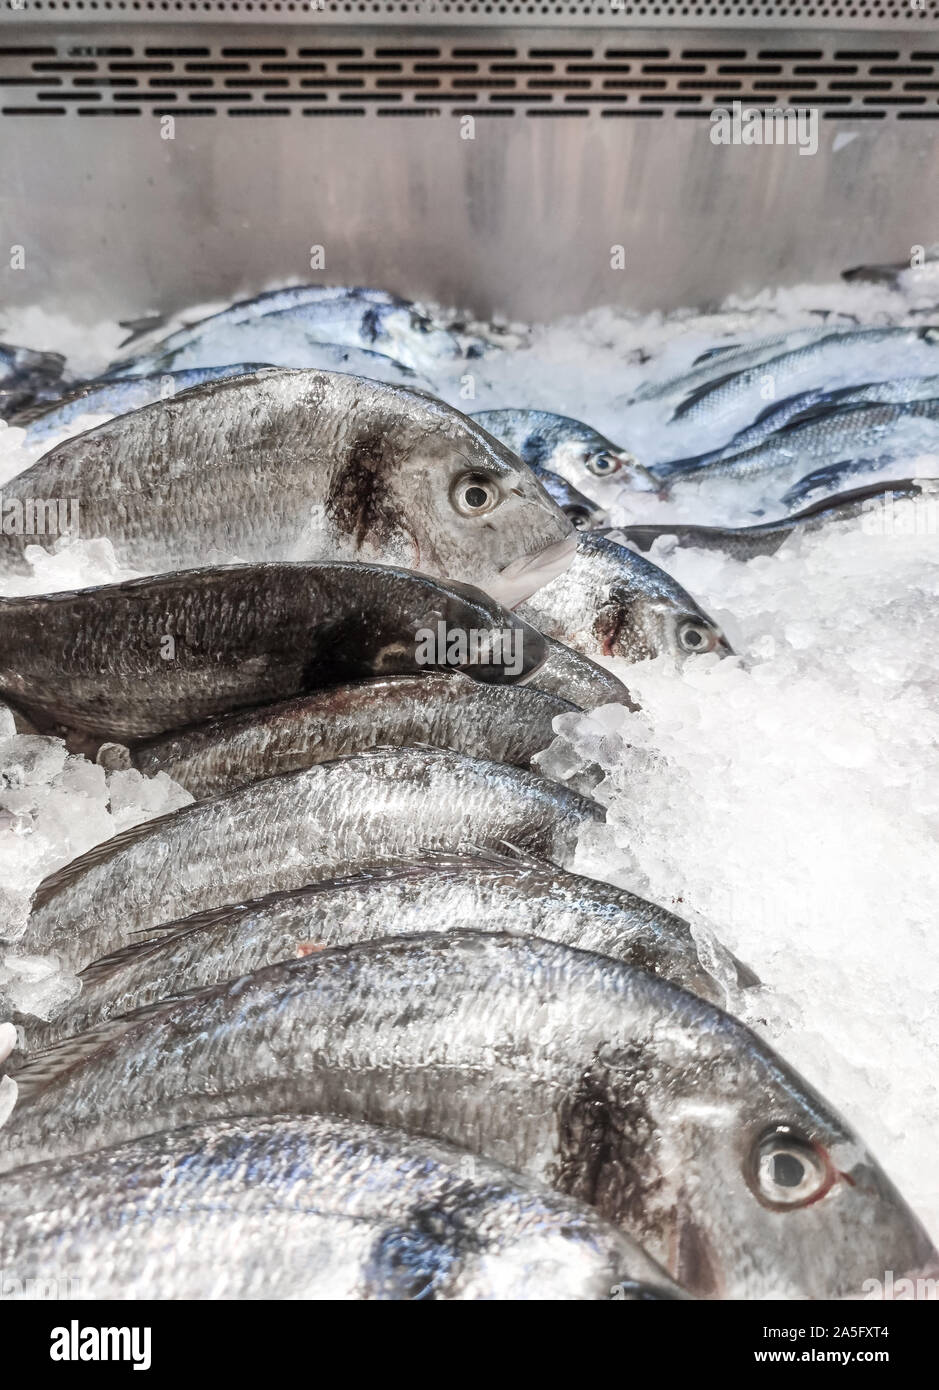 Sea bream Sparus aurata on ice at the seafood booth. Dorada fish or gilt-head bream on ice background sale in supermarket Stock Photo